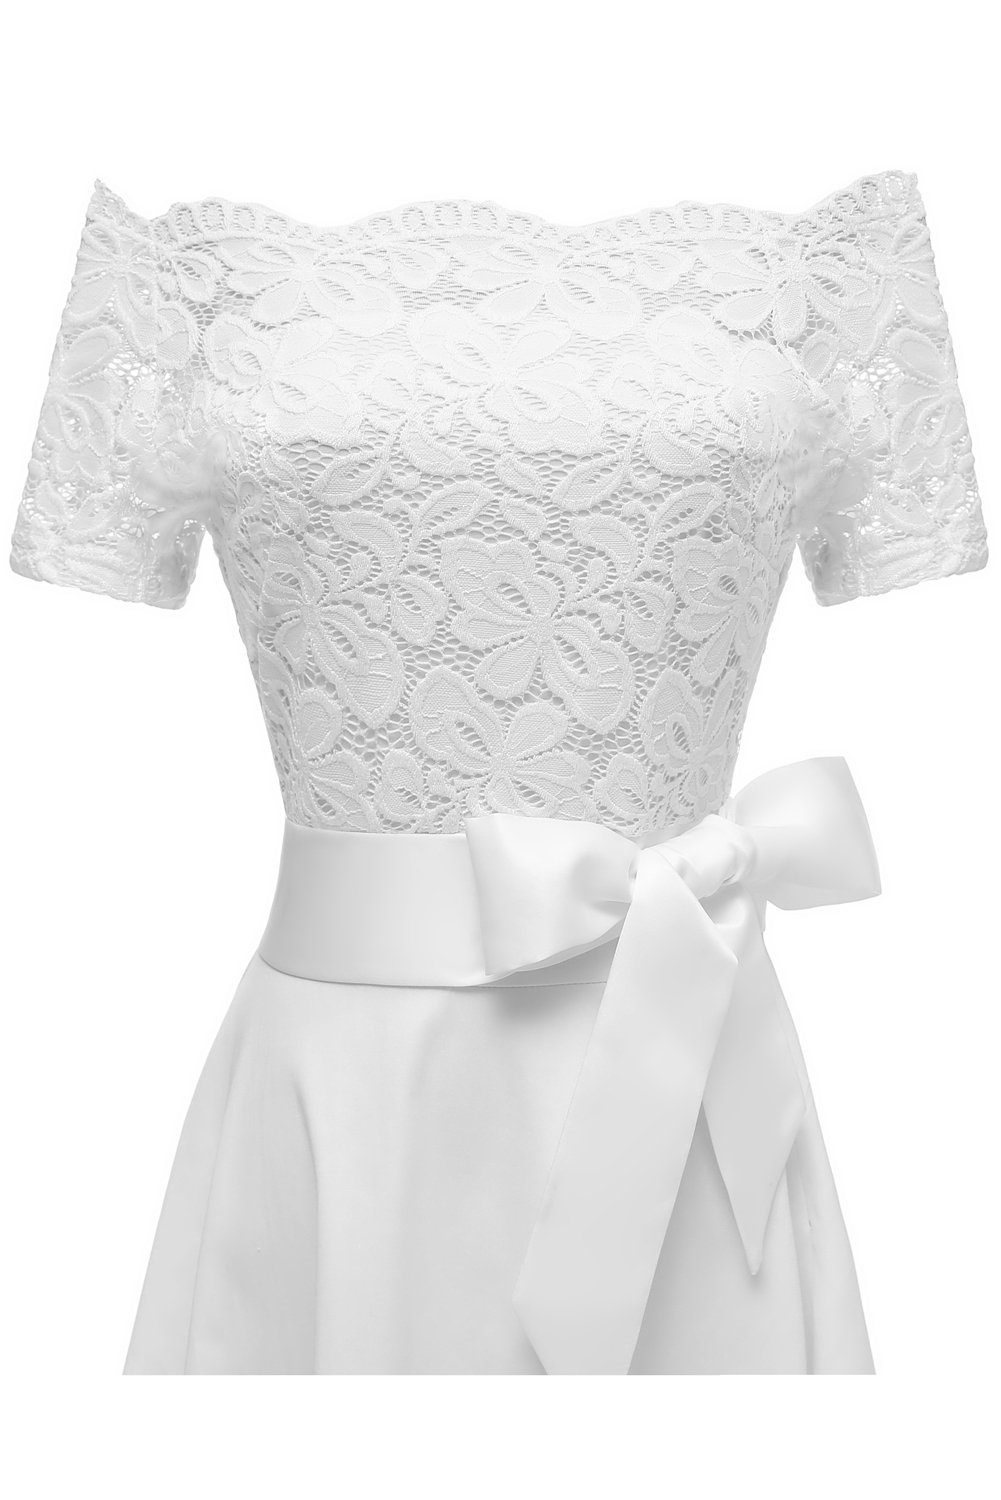 MILANO BRIDE Women's Vintage Floral Lace Short Sleeves Boat Neck Cocktail Formal Swing Dress-L-White by MILANO BRIDE (Image #6)